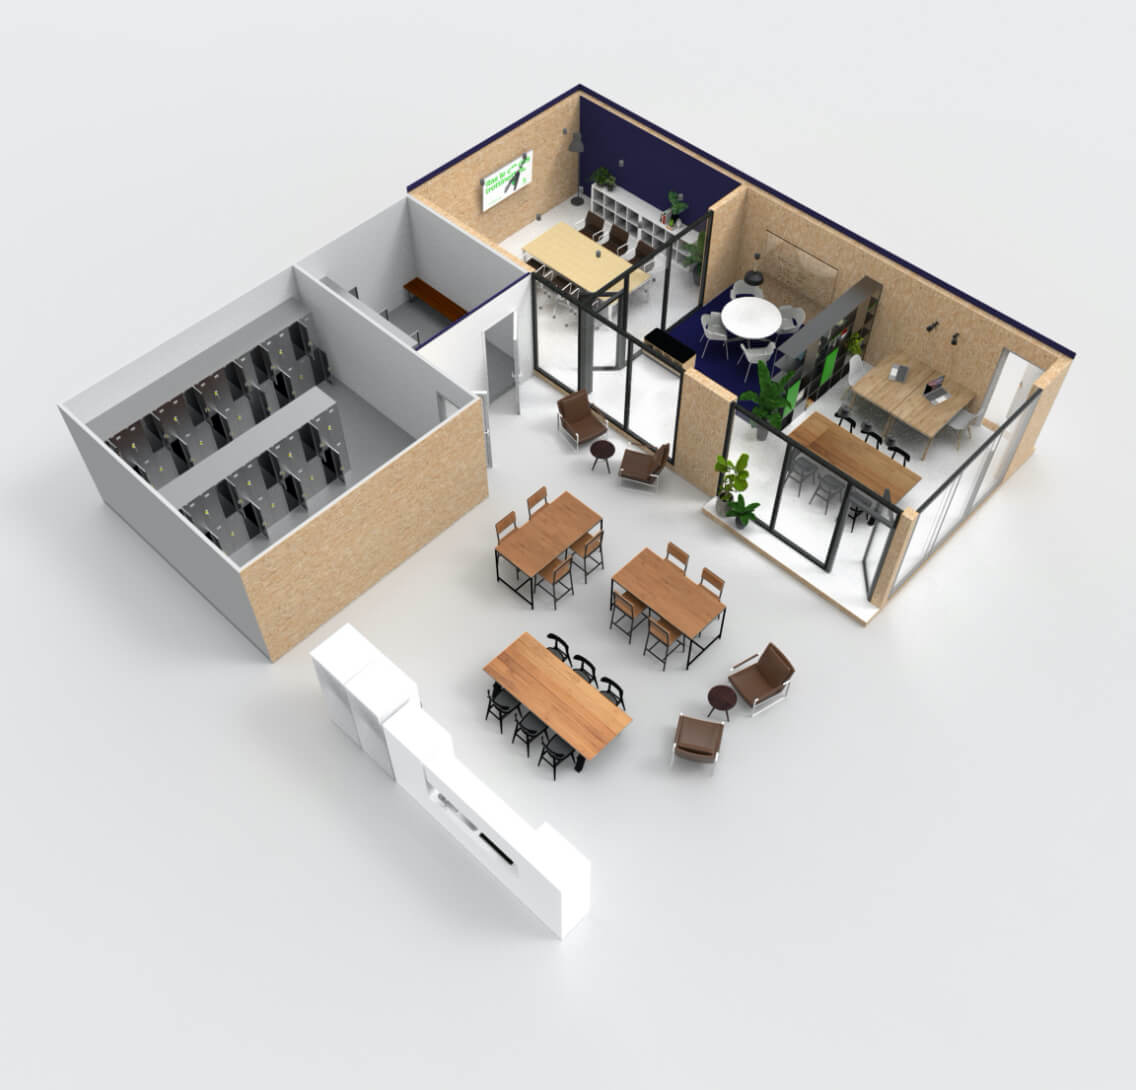 3D rendering of office layout